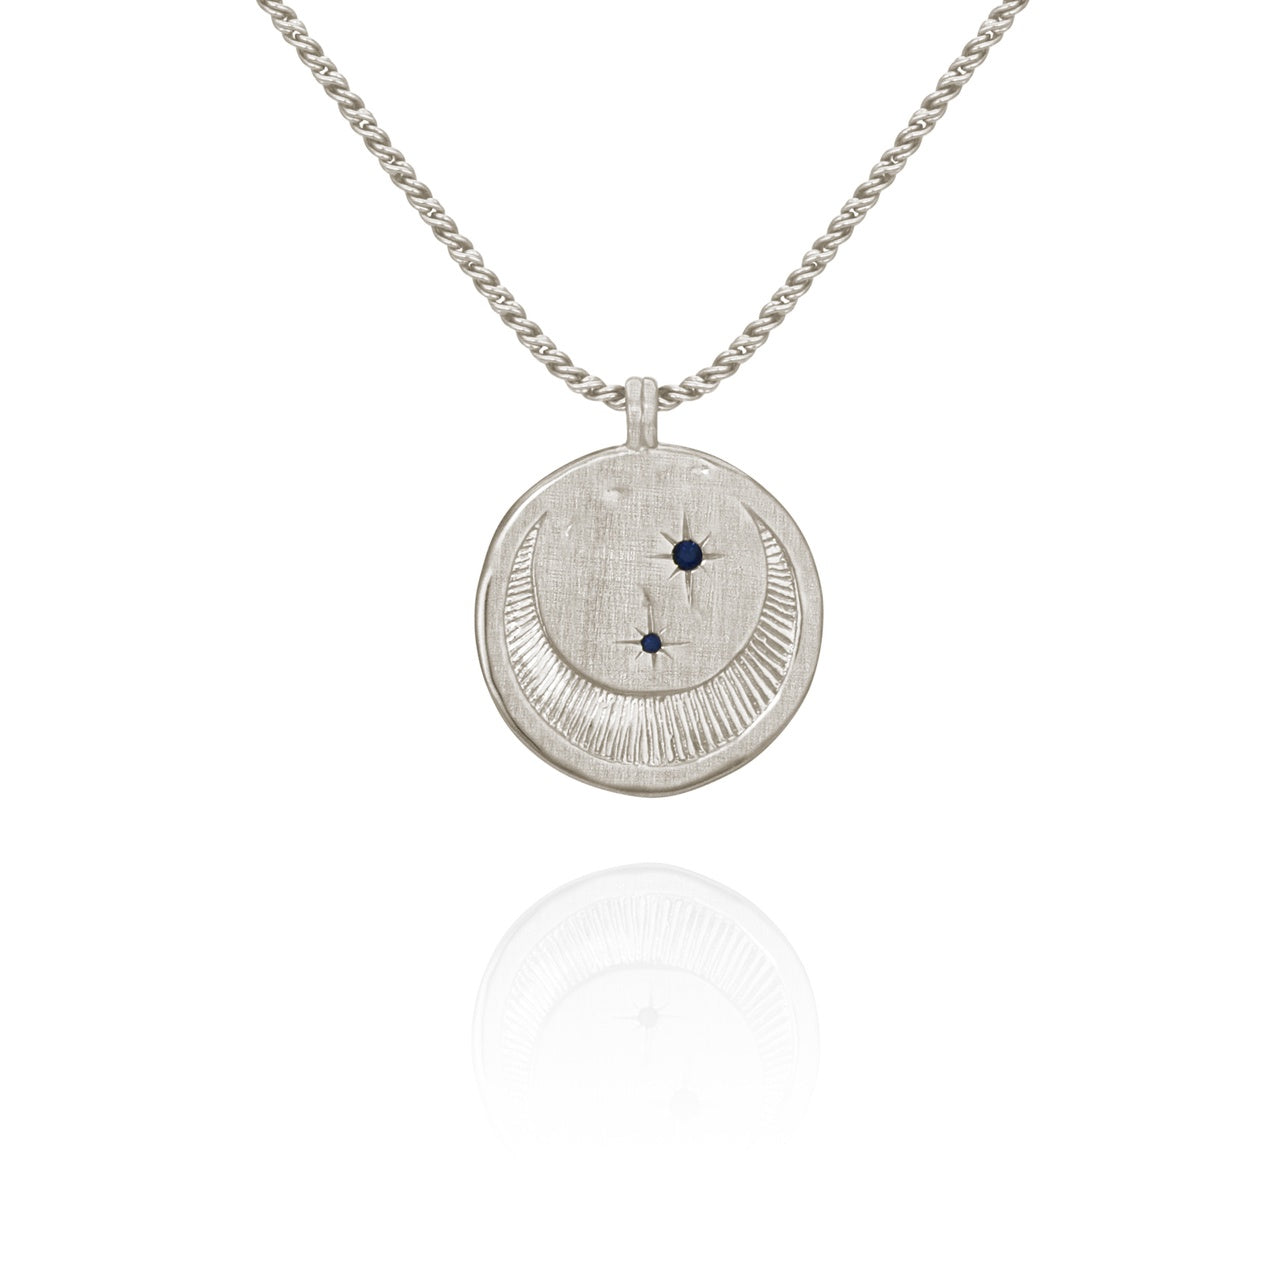 Celeste Necklace Silver - The Artisan Storeroom